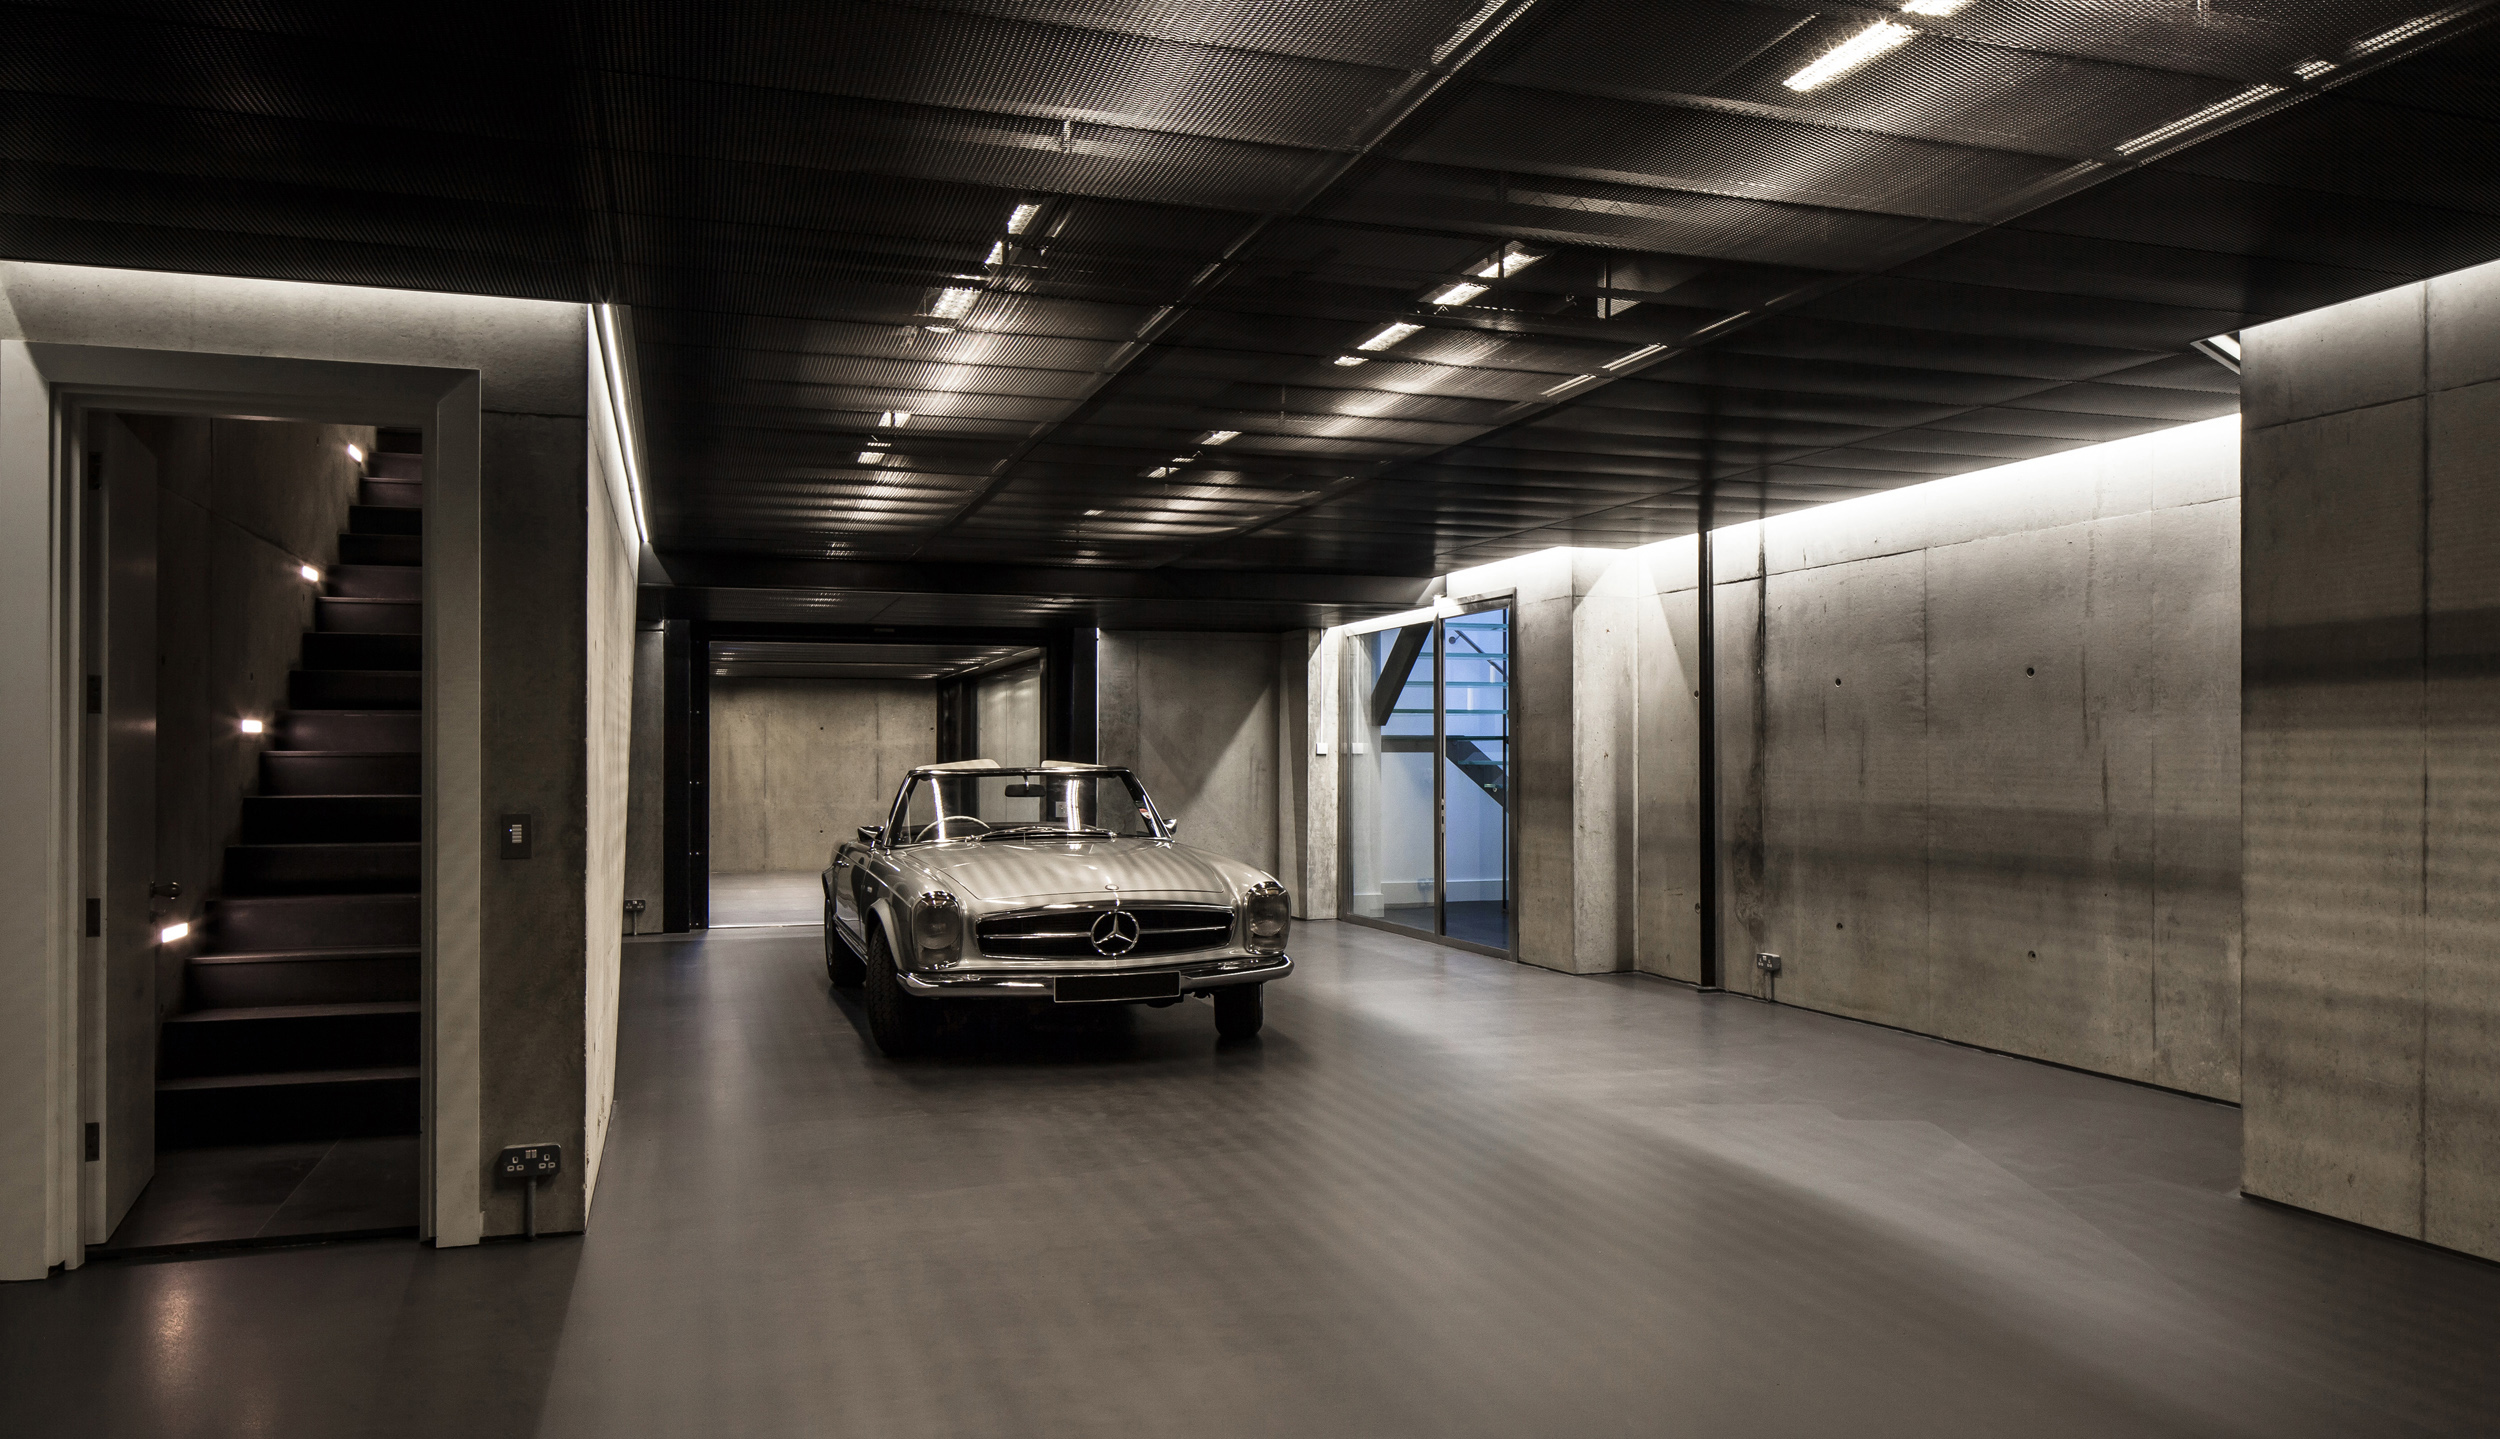 recent_spaces_hinh_garage_photo.jpg